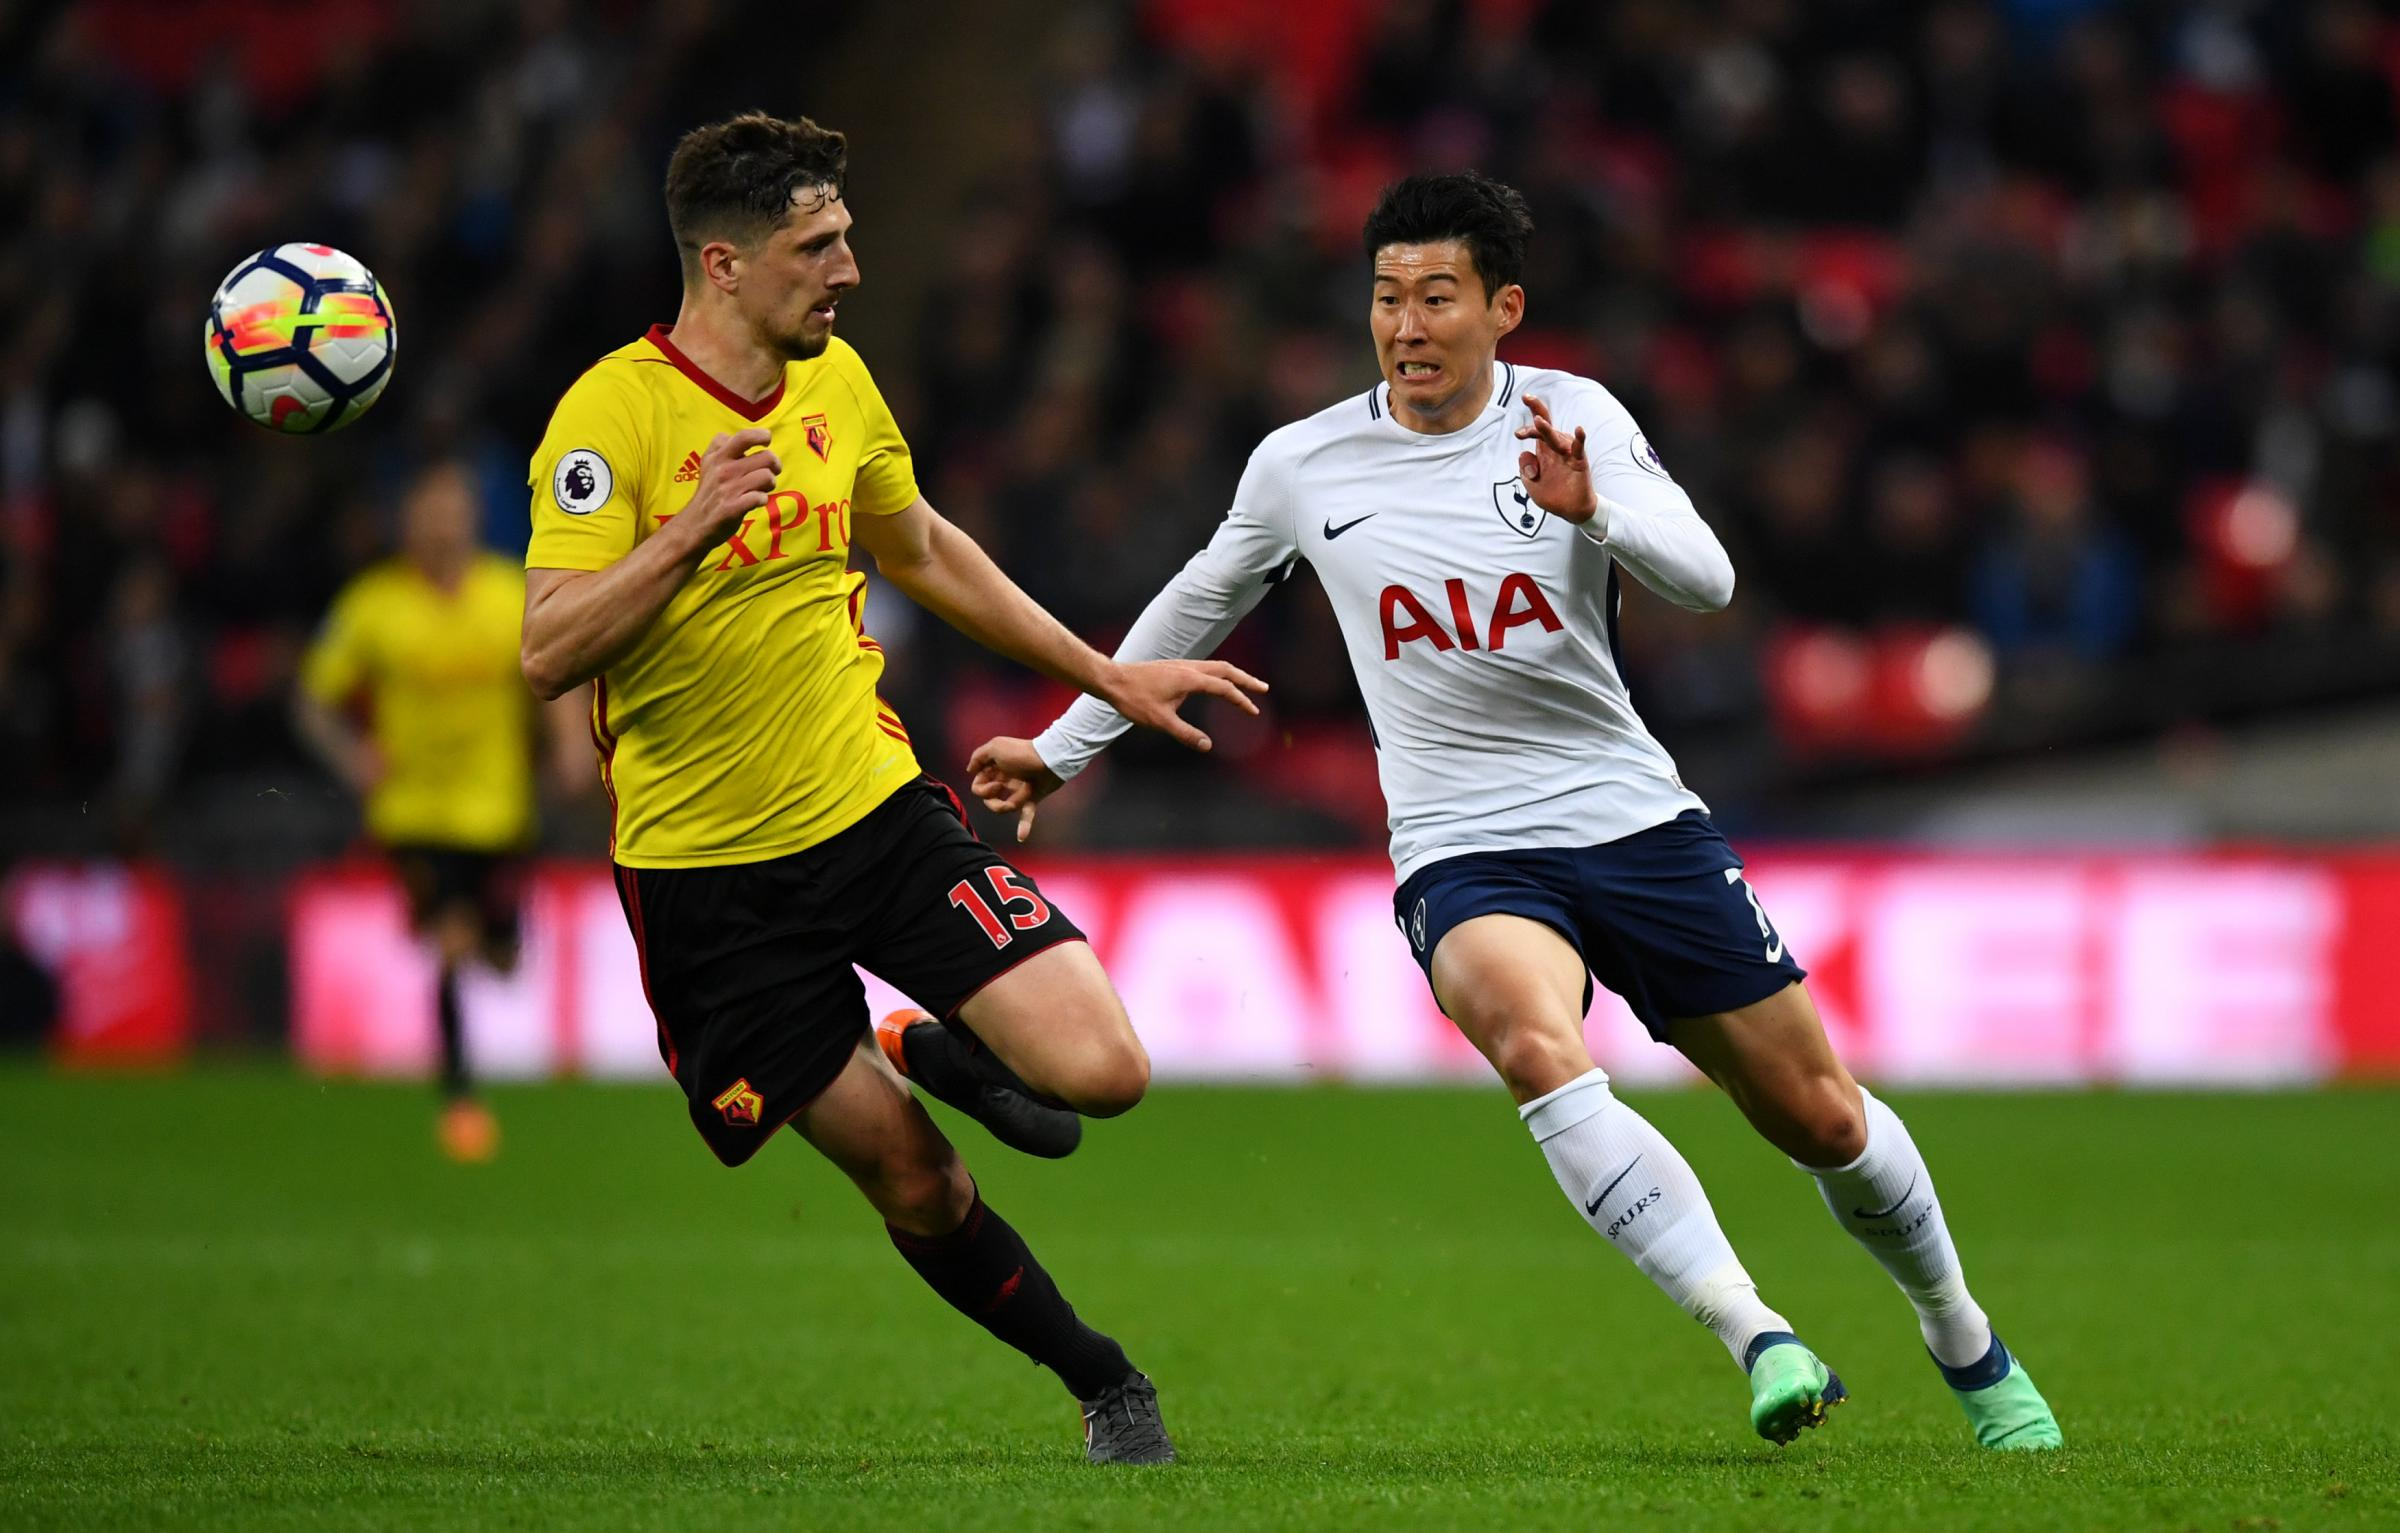 Spurs are hopeful Son Heung-min will be ready to face Watford on Wednesday. Picture: Action Images